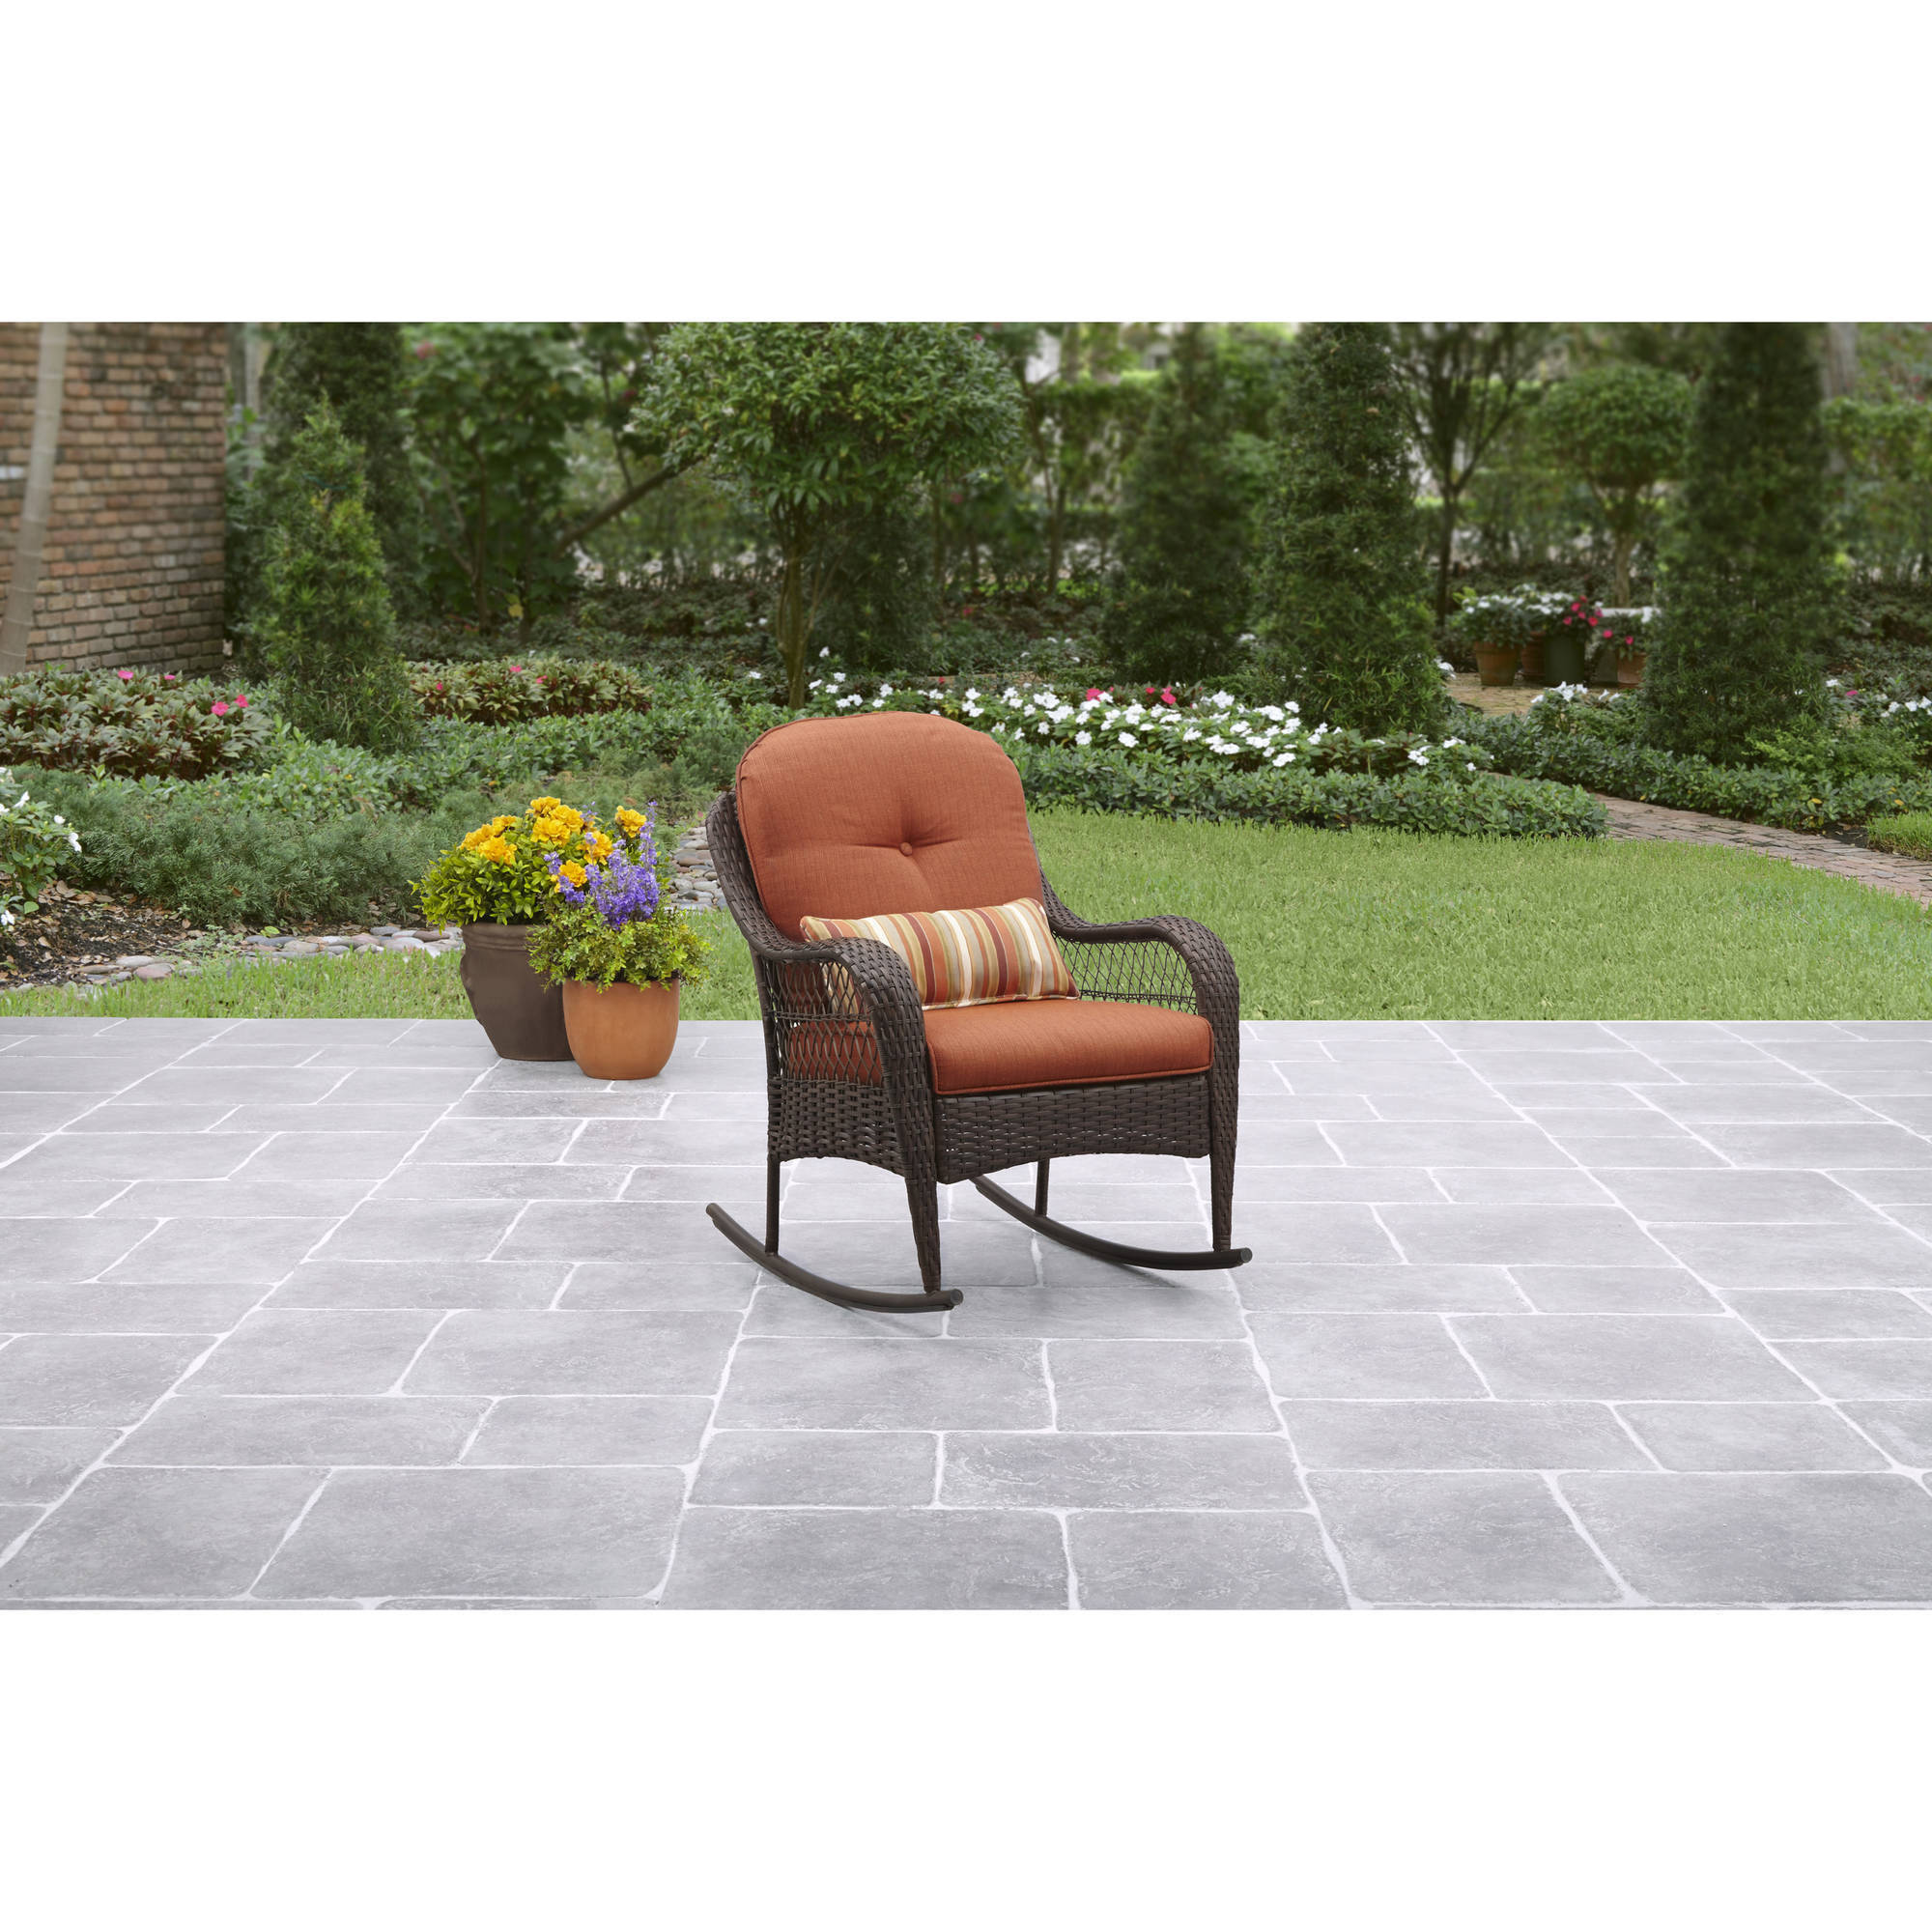 Better Homes \u0026 Gardens Whitehaven 3-Piece Bistro Set - Walmart.com